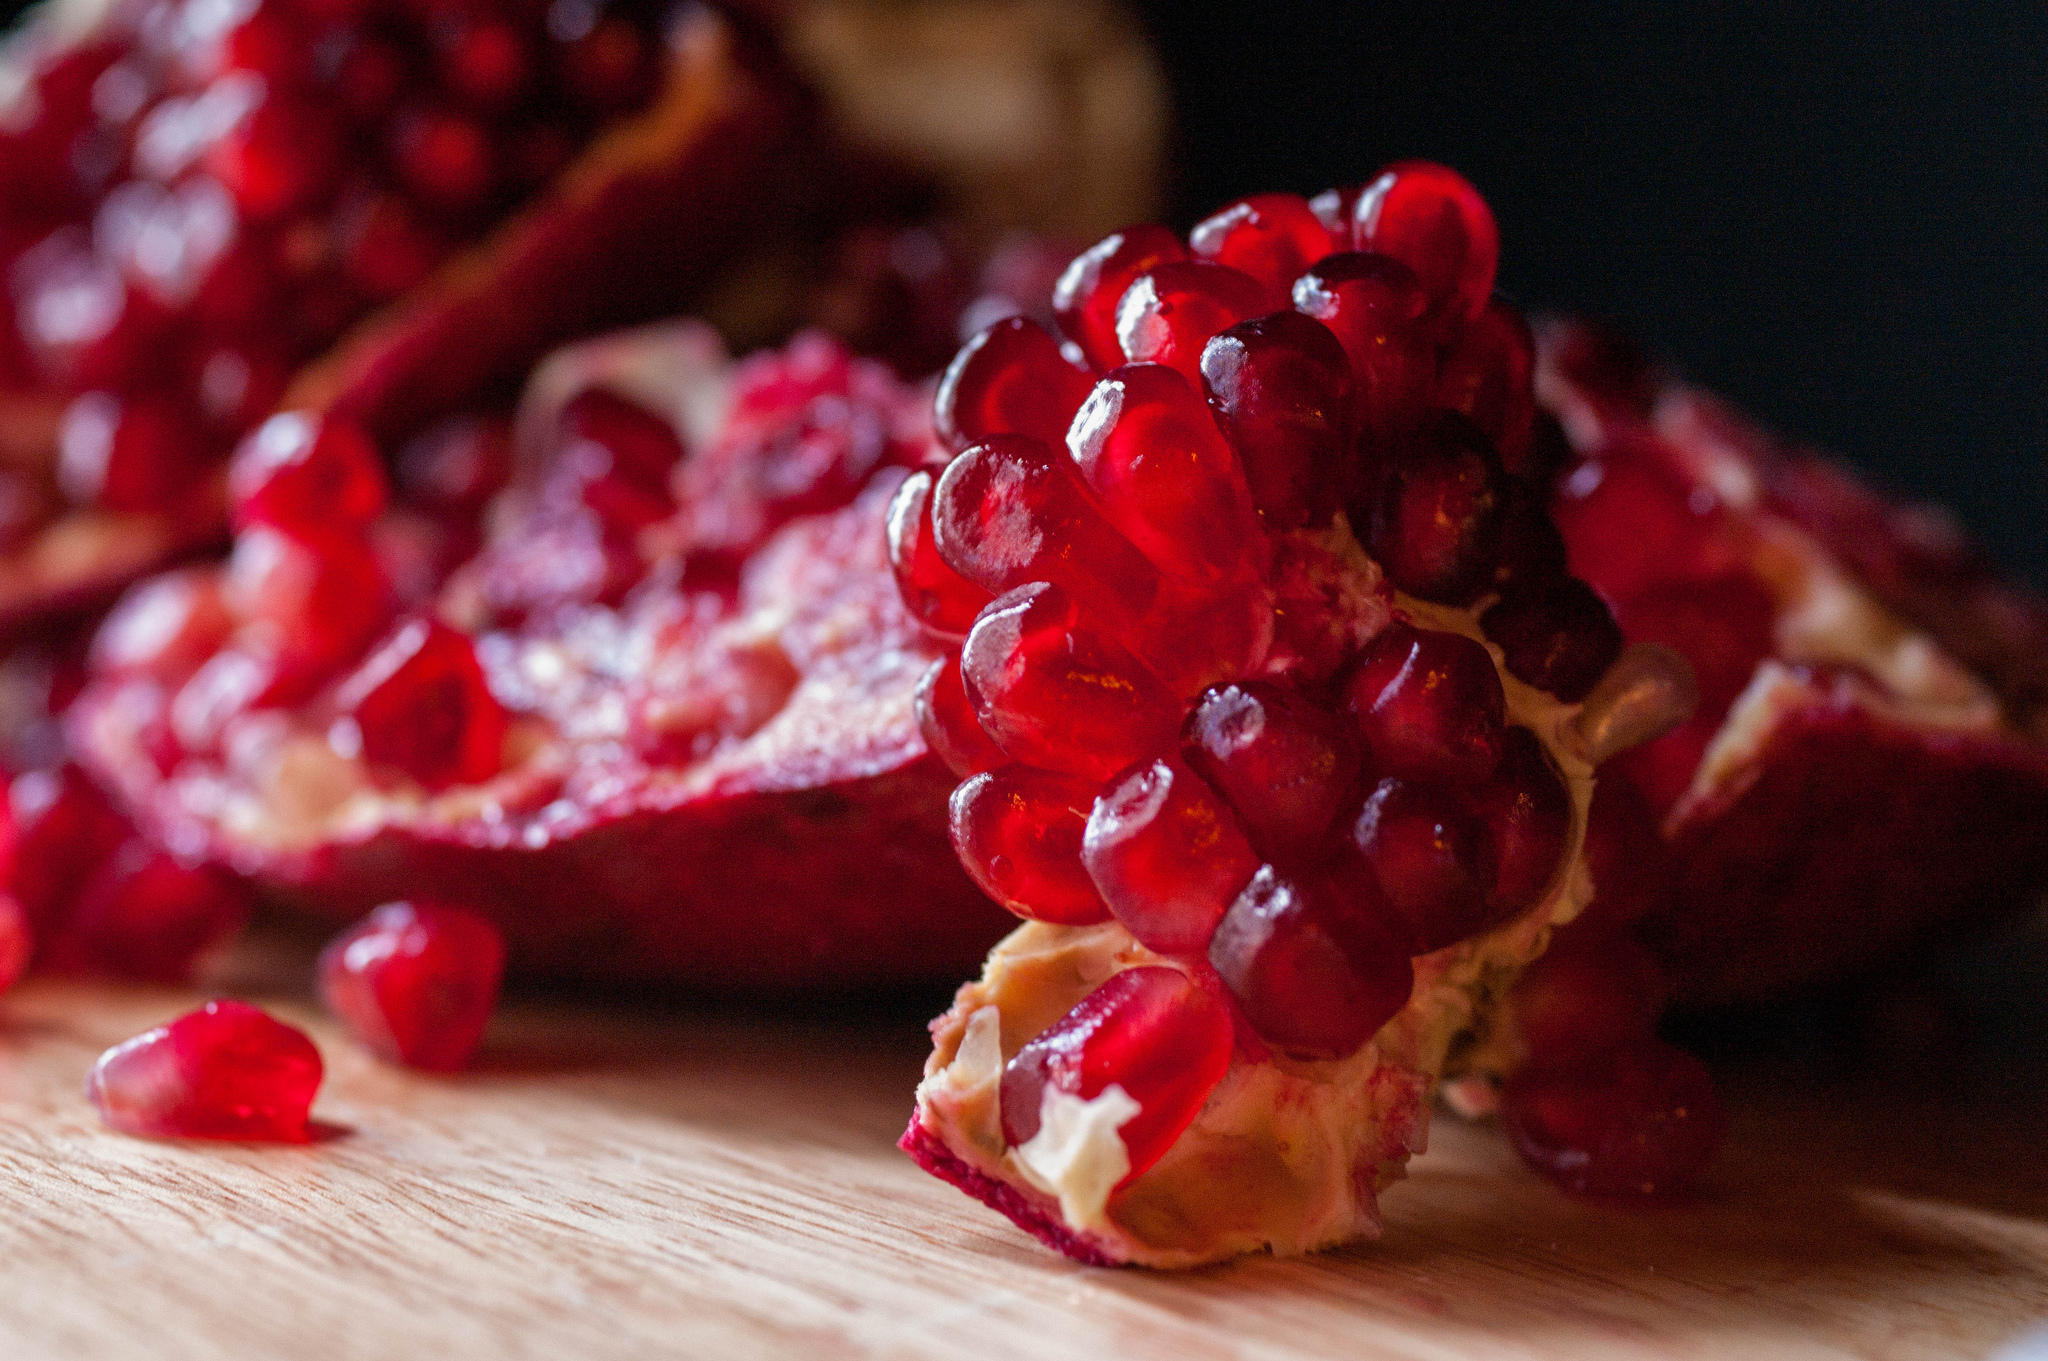 What is pomegranate 90